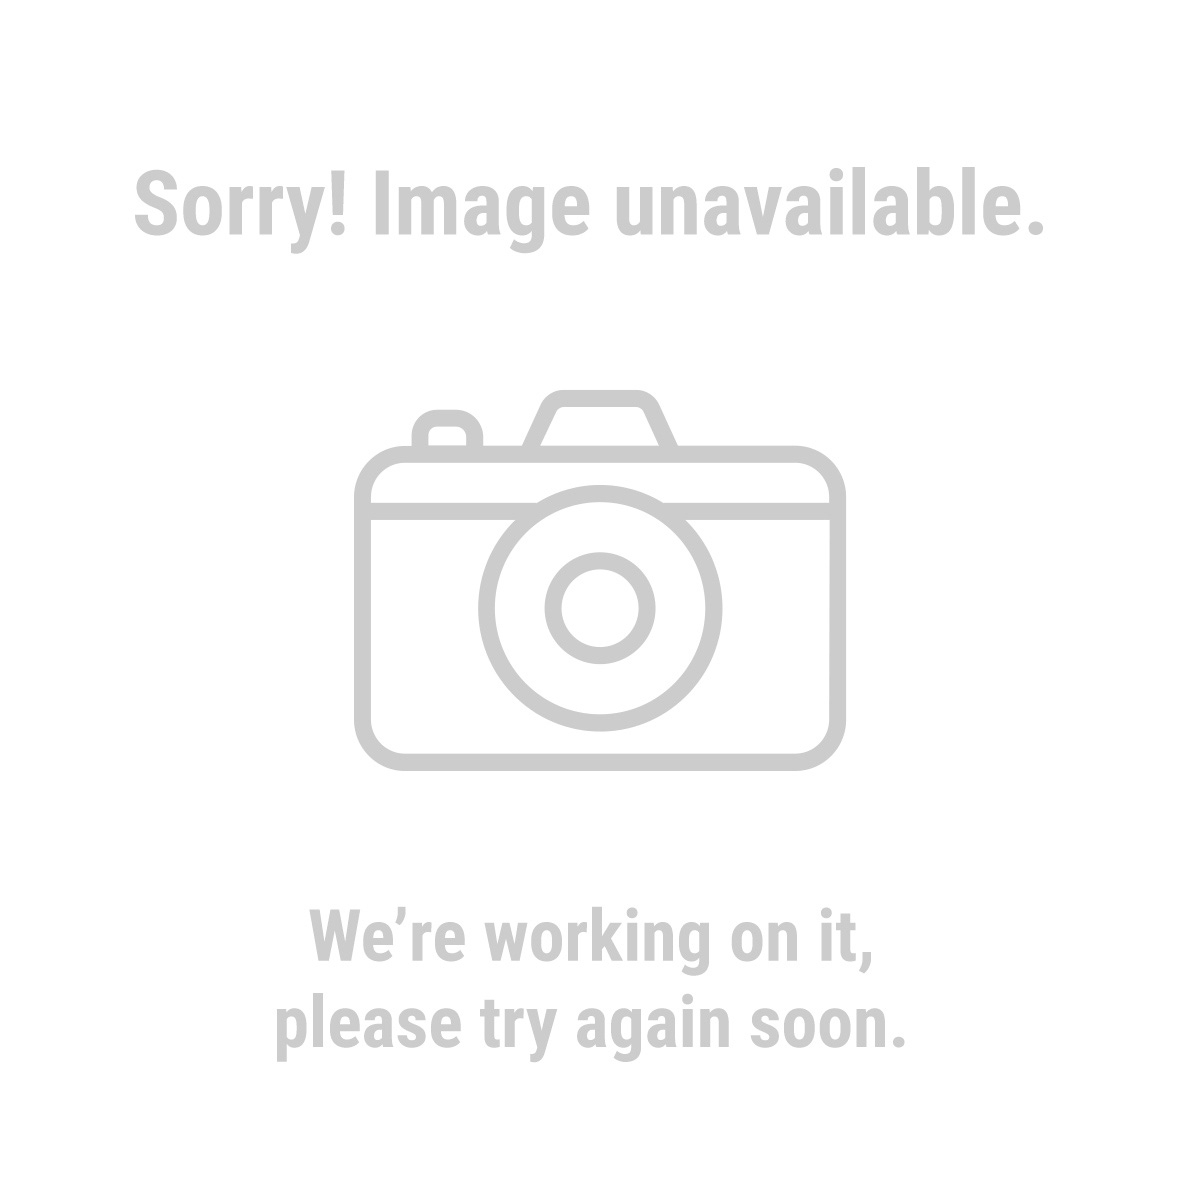 Pittsburgh Automotive 61717 2000 lb. Electric Hoist with Remote Control